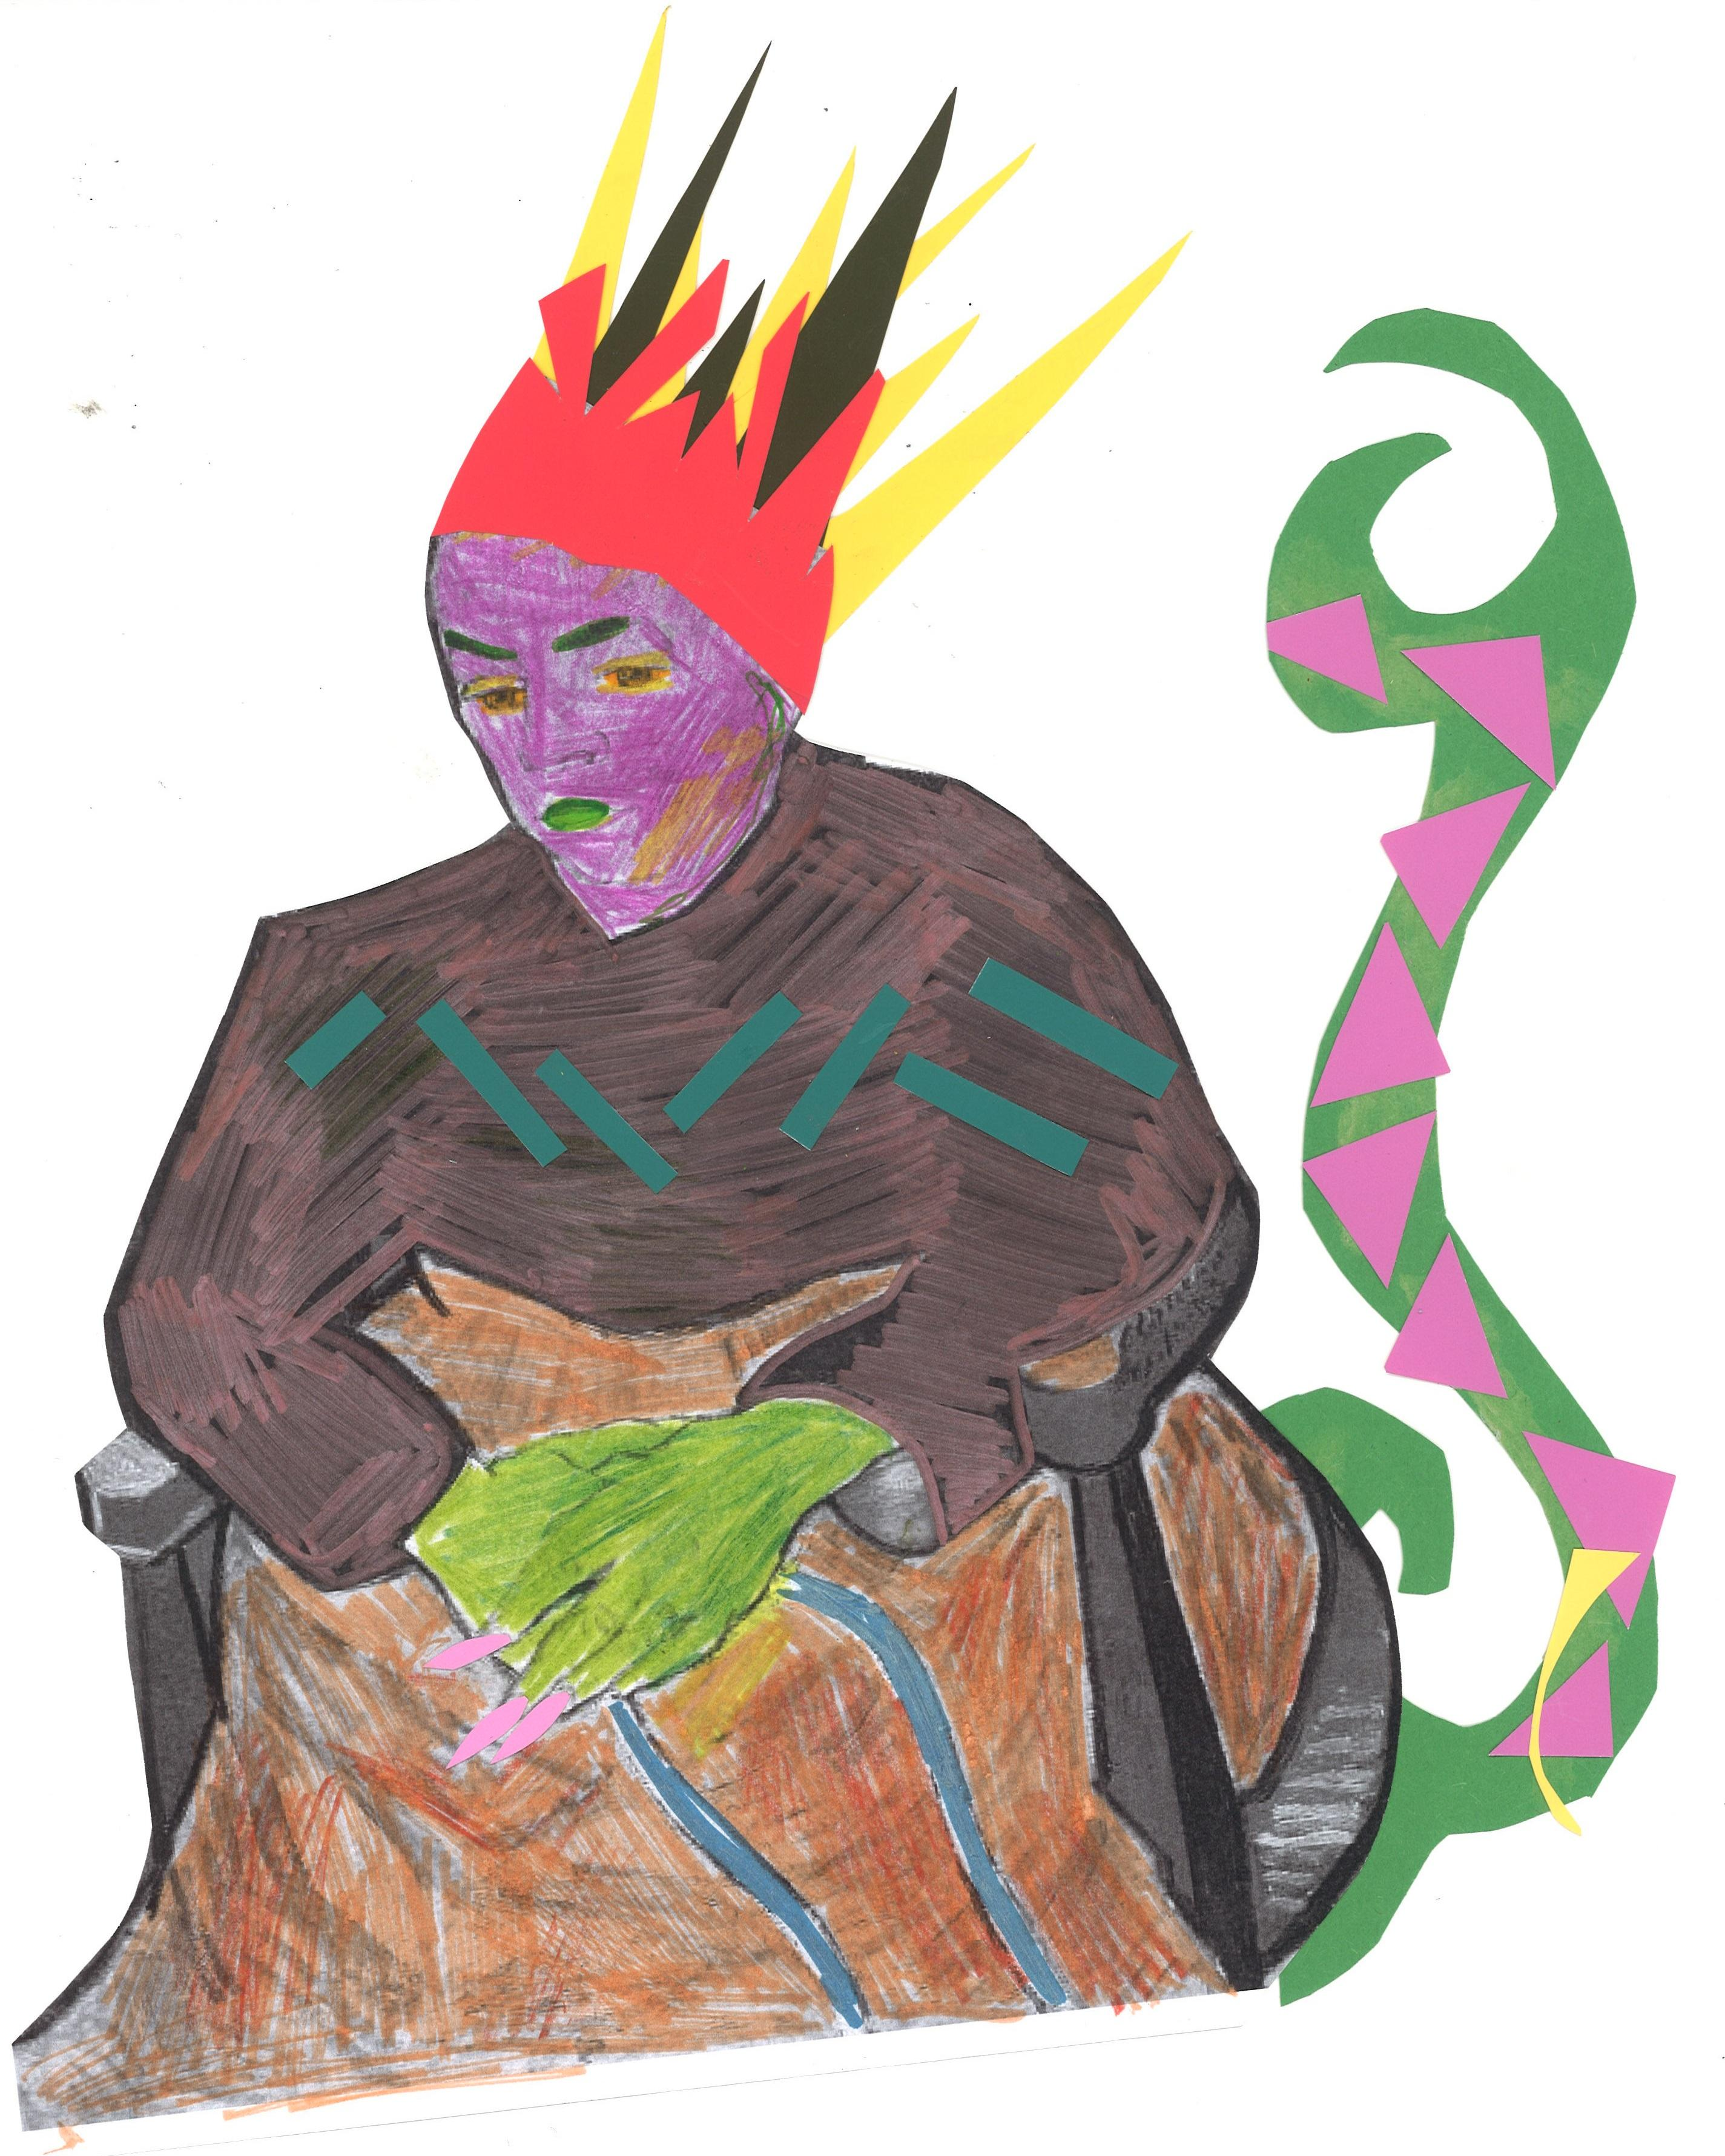 Collage-drawing of a seated person with a purple face, a green tail with pink spikes, and green hands with long pink nails, and wearing a brown shirt, orange-brown blanket, and a spiky, three-tiered crown